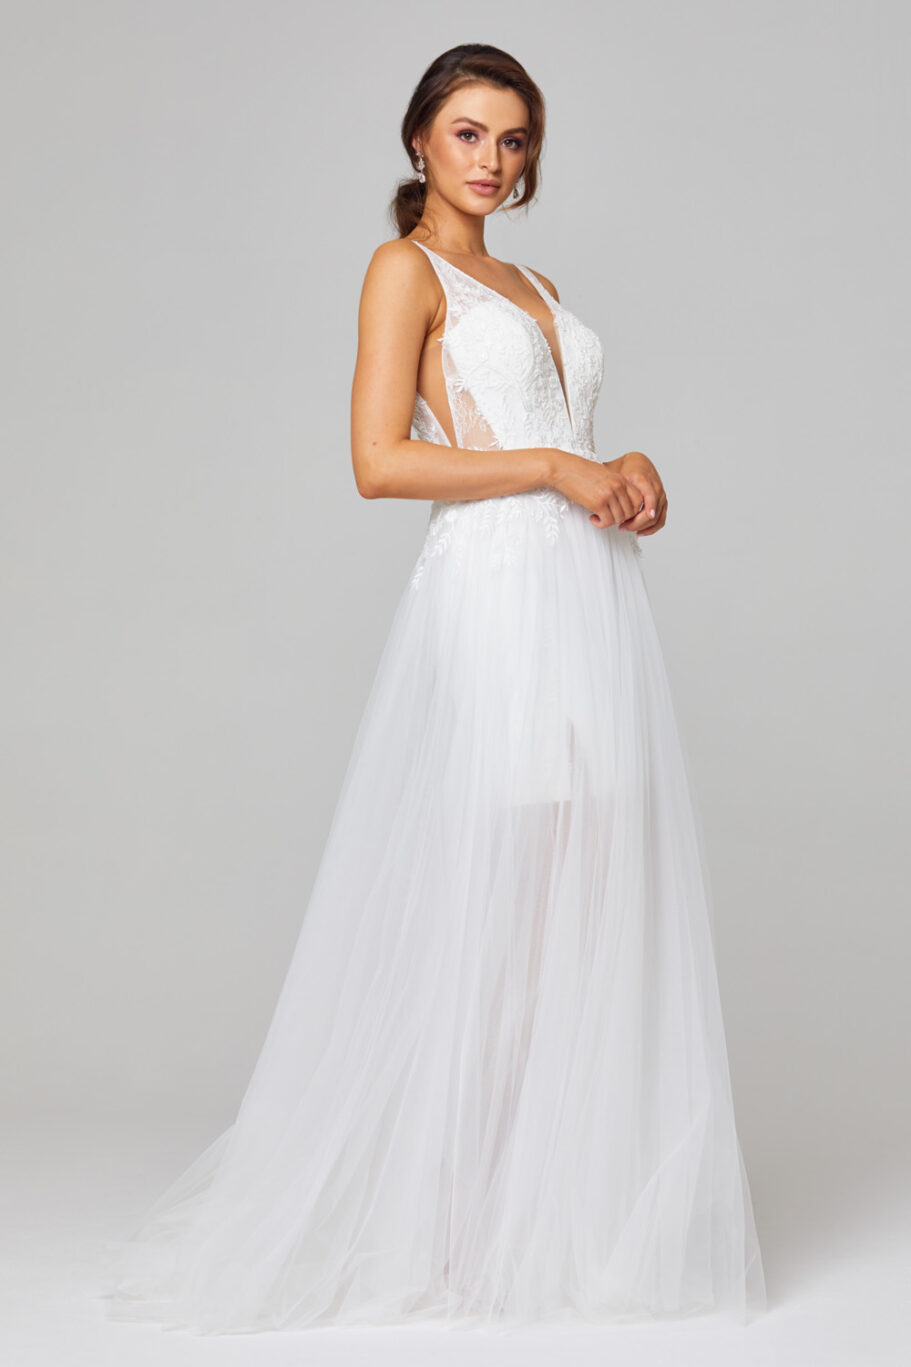 Arabella Plunging V-neck Wedding Dress - TC319 side